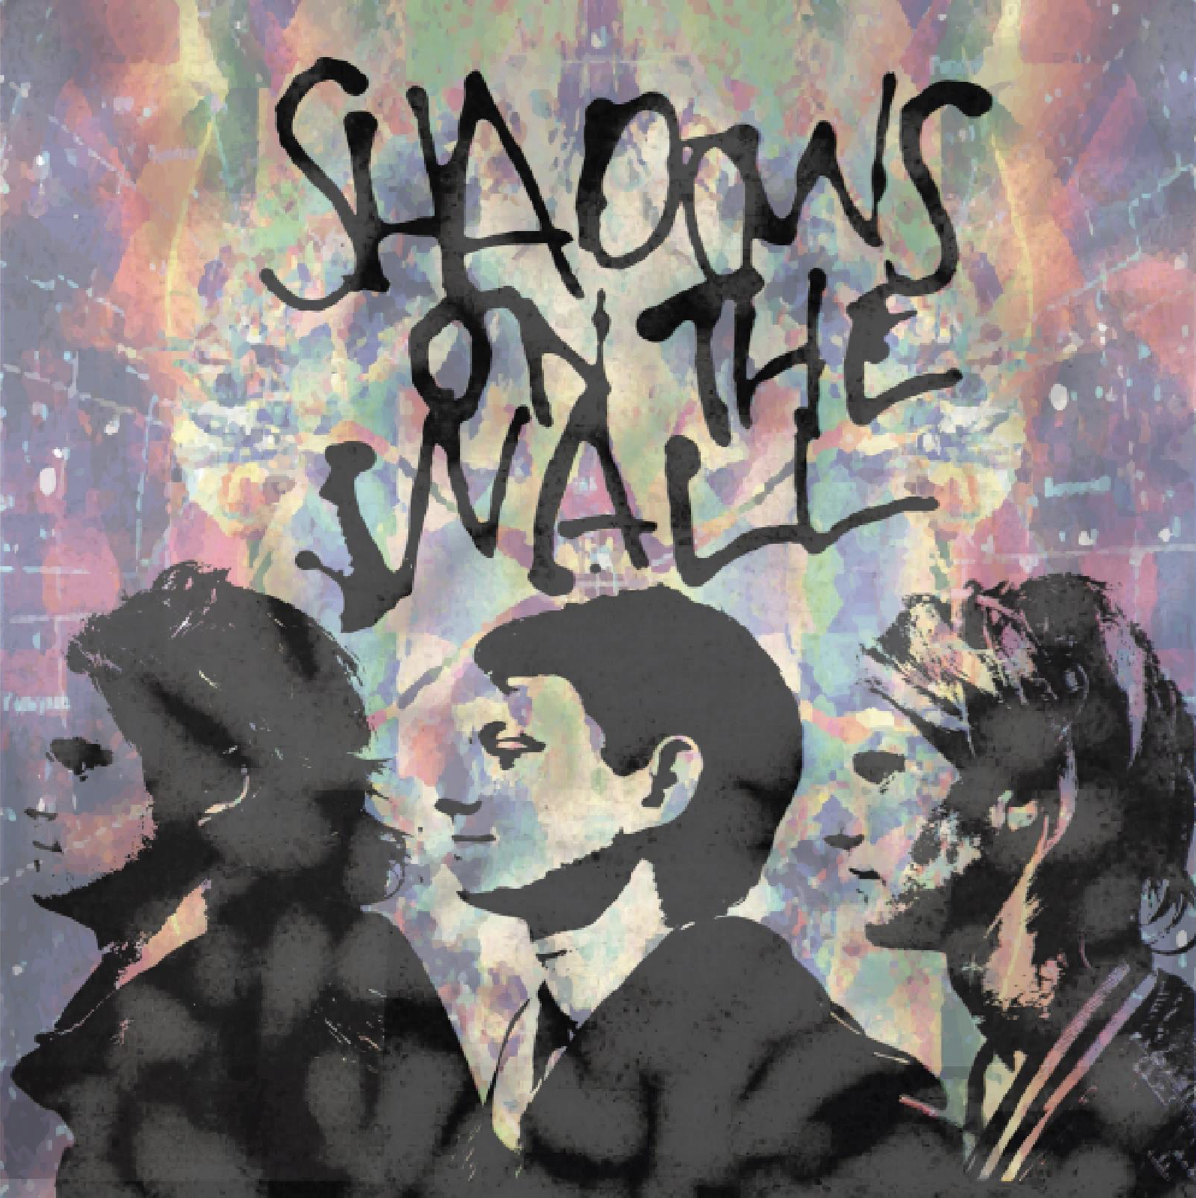 CD Review - 'Shadows On The Wall' - blog post image